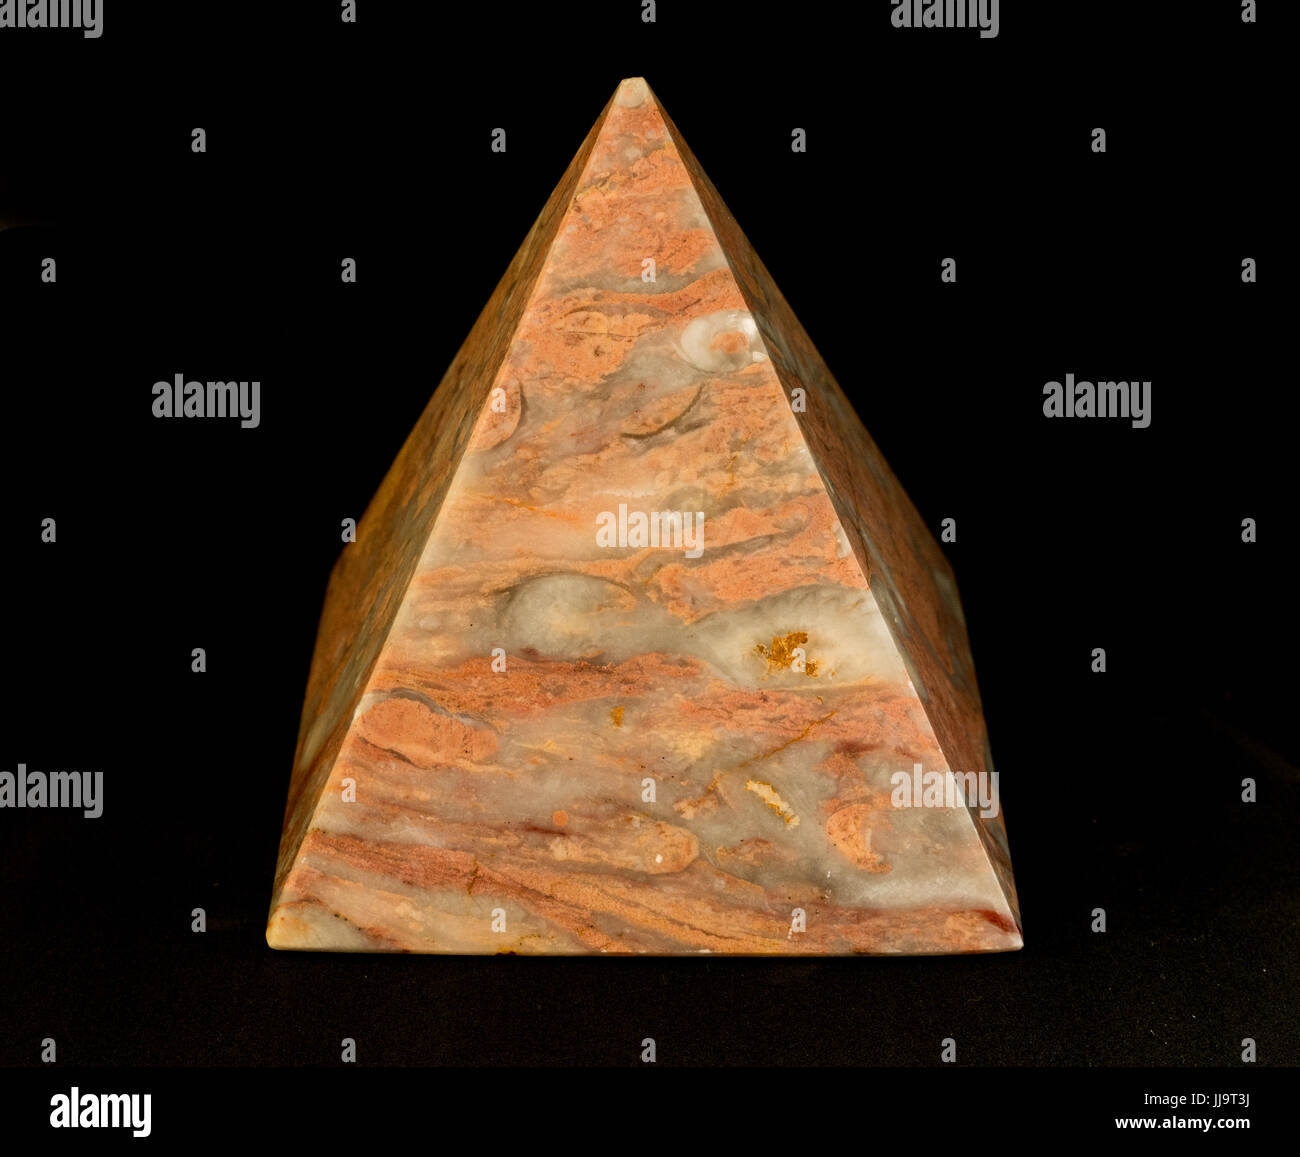 Still life of peach coloured marble pyramid against a black background - Stock Image